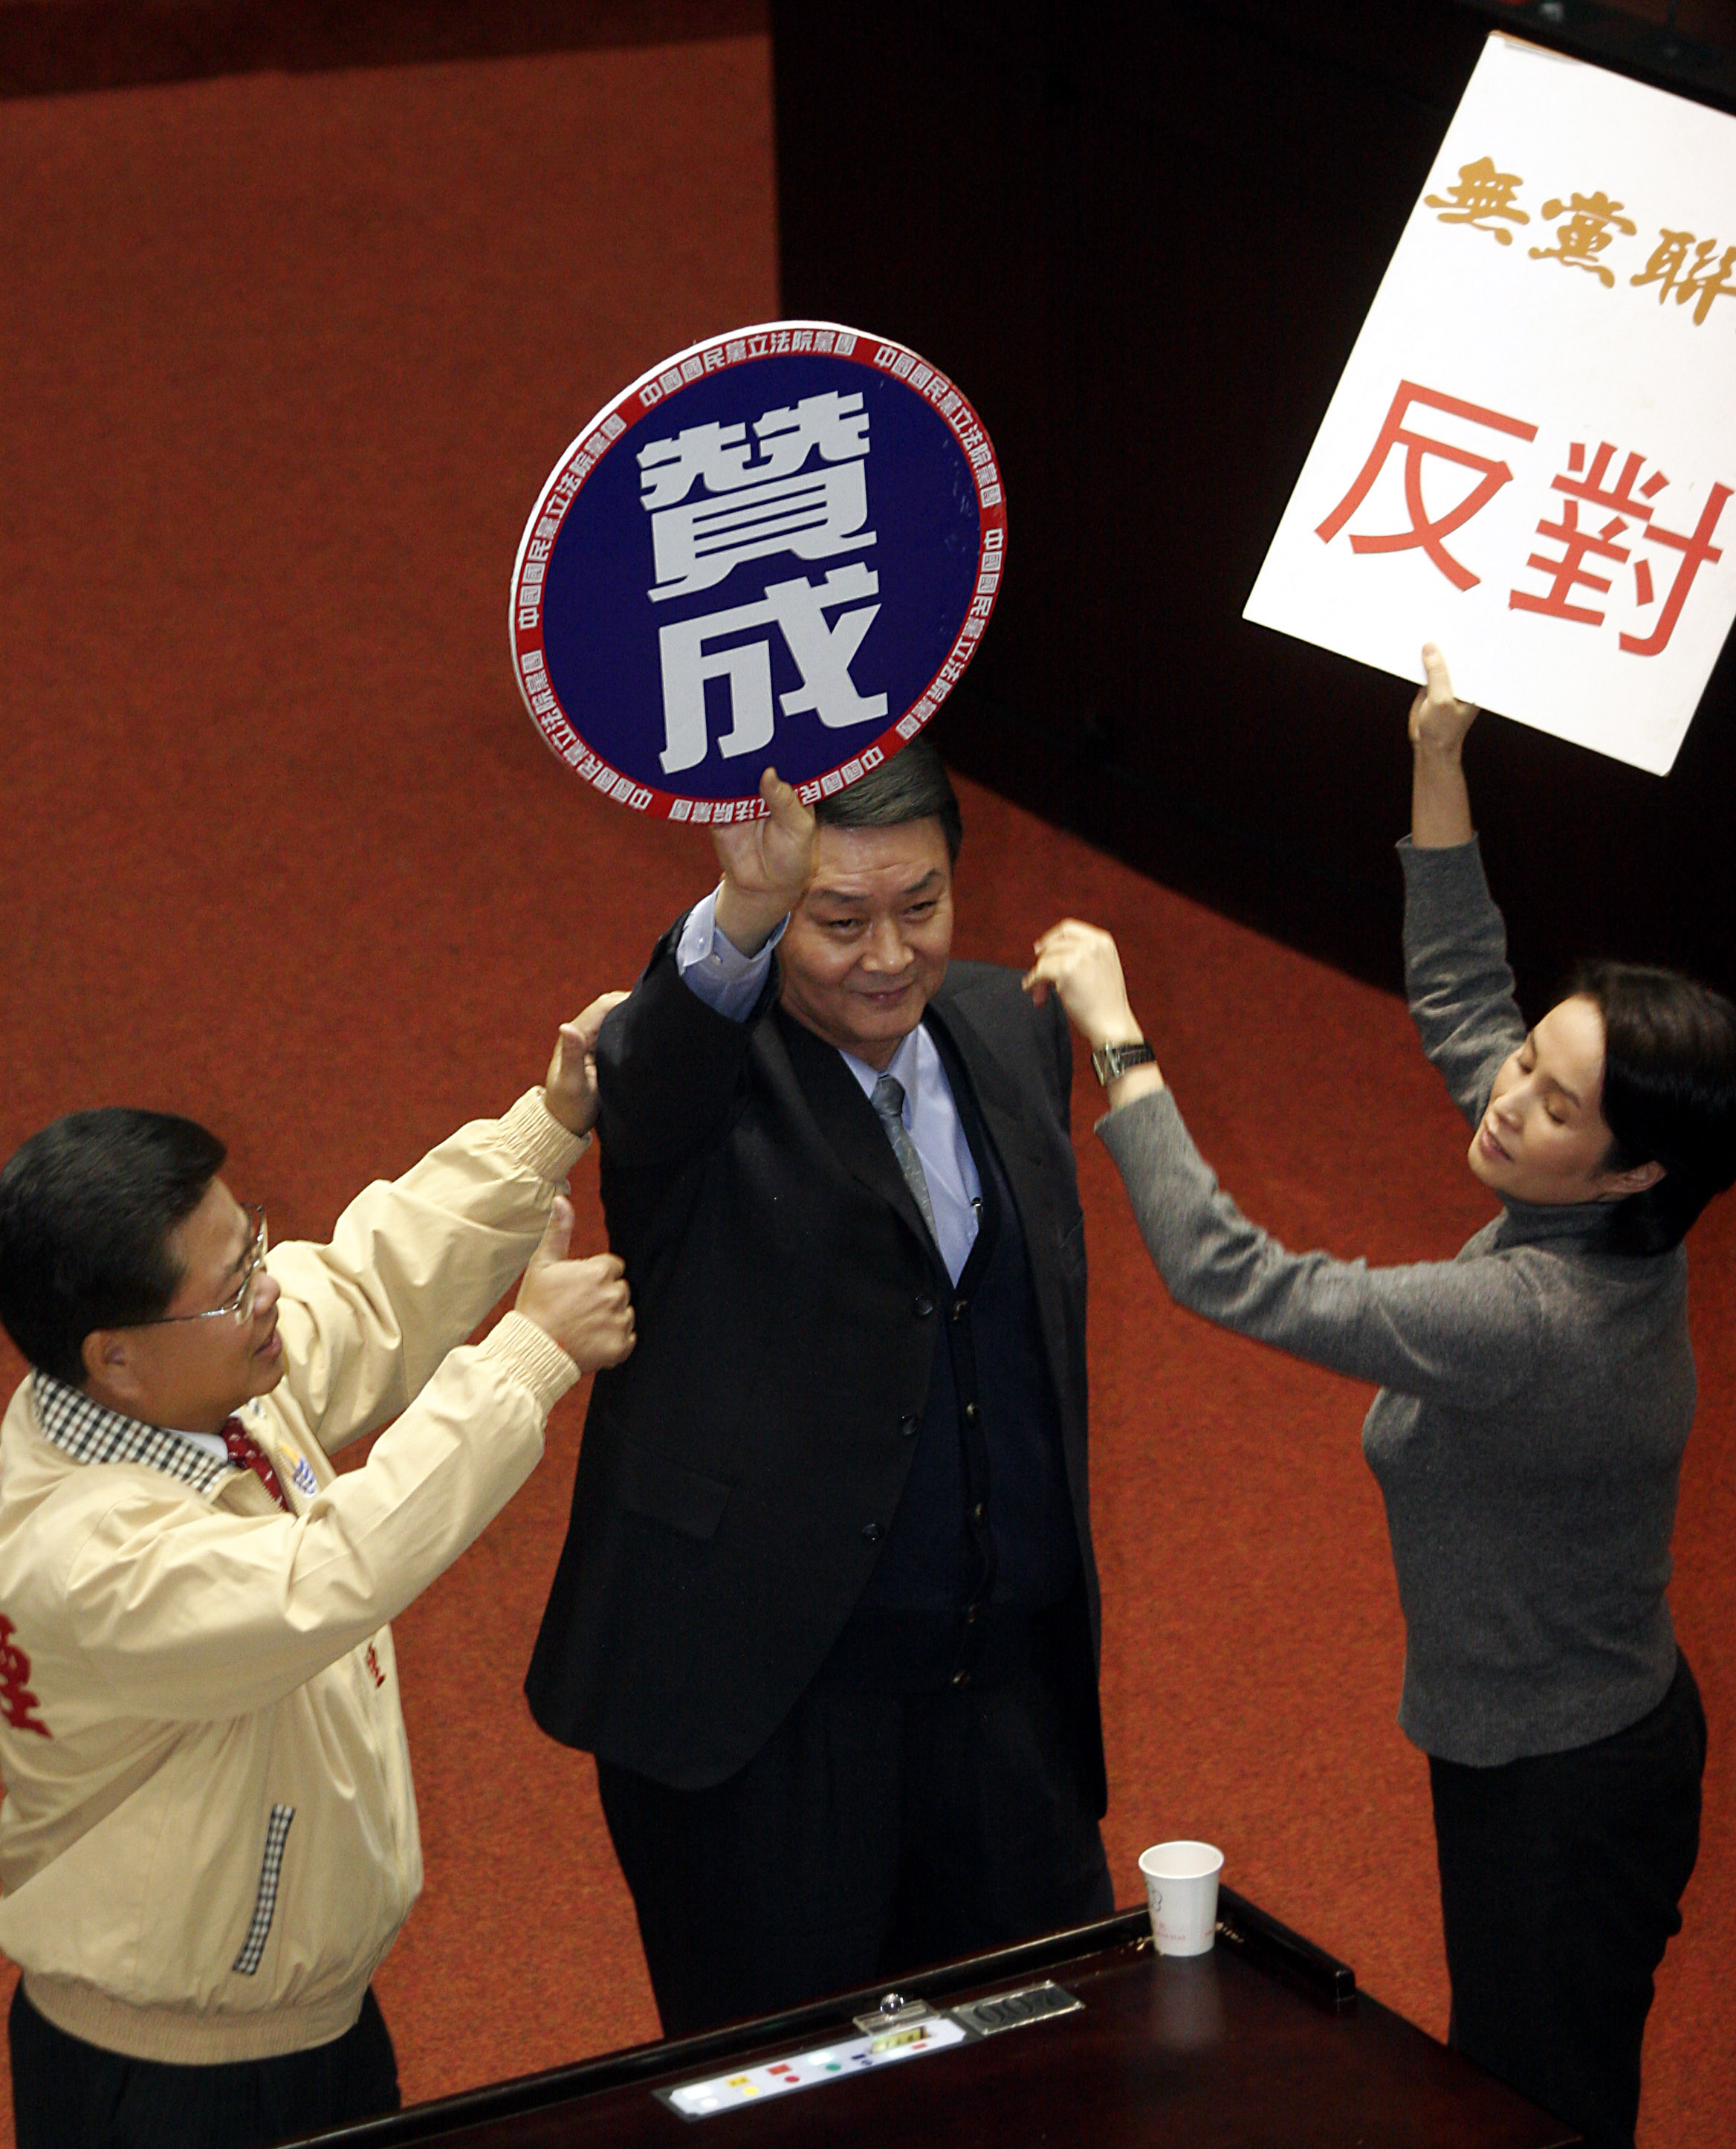 Opposition Nationalist Party lawmaker Tsai Chin-lung, center, holds a sign that reads 'Approve' during a vote on an arms package deal at the Legislatu...